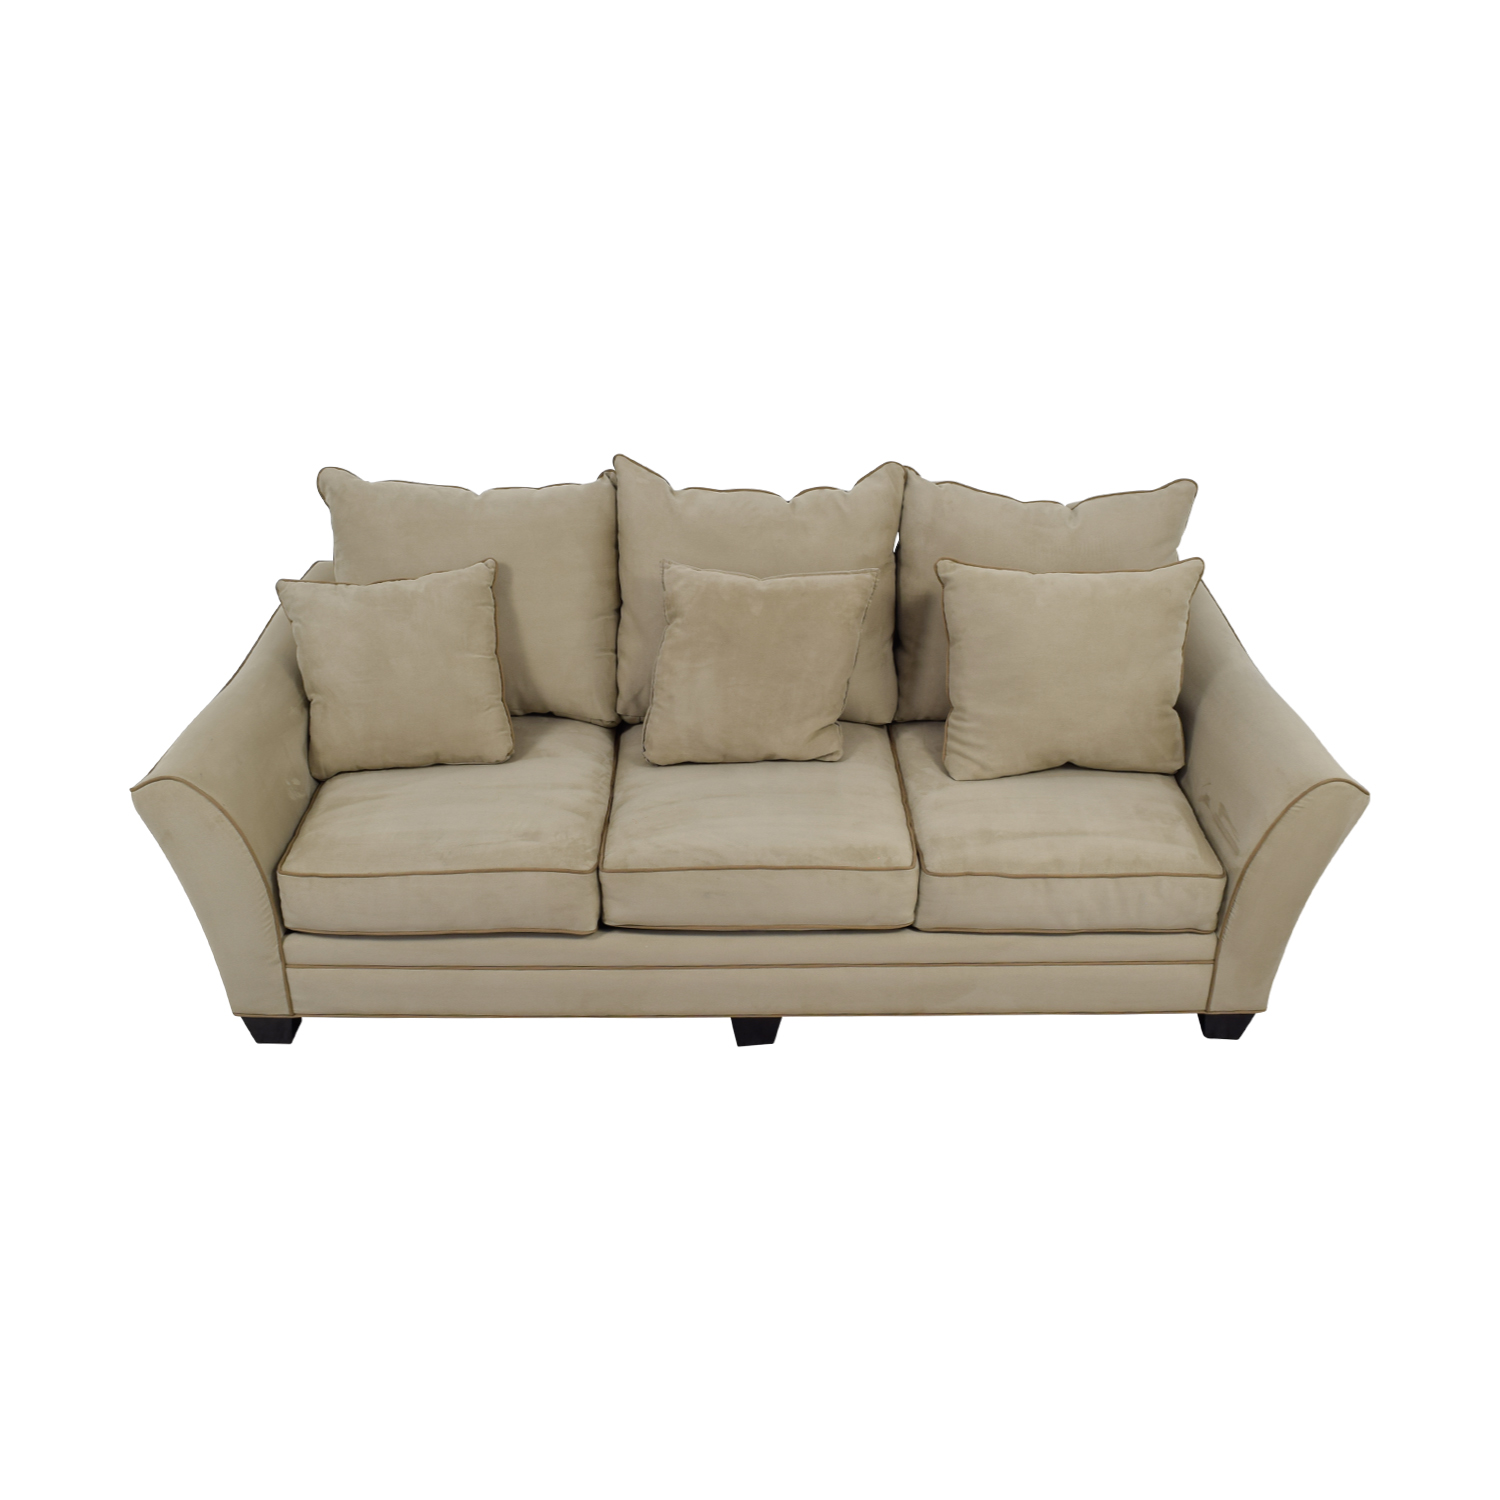 buy Raymour & Flanigan Beige Three-Cushion Sofa Raymour & Flanigan